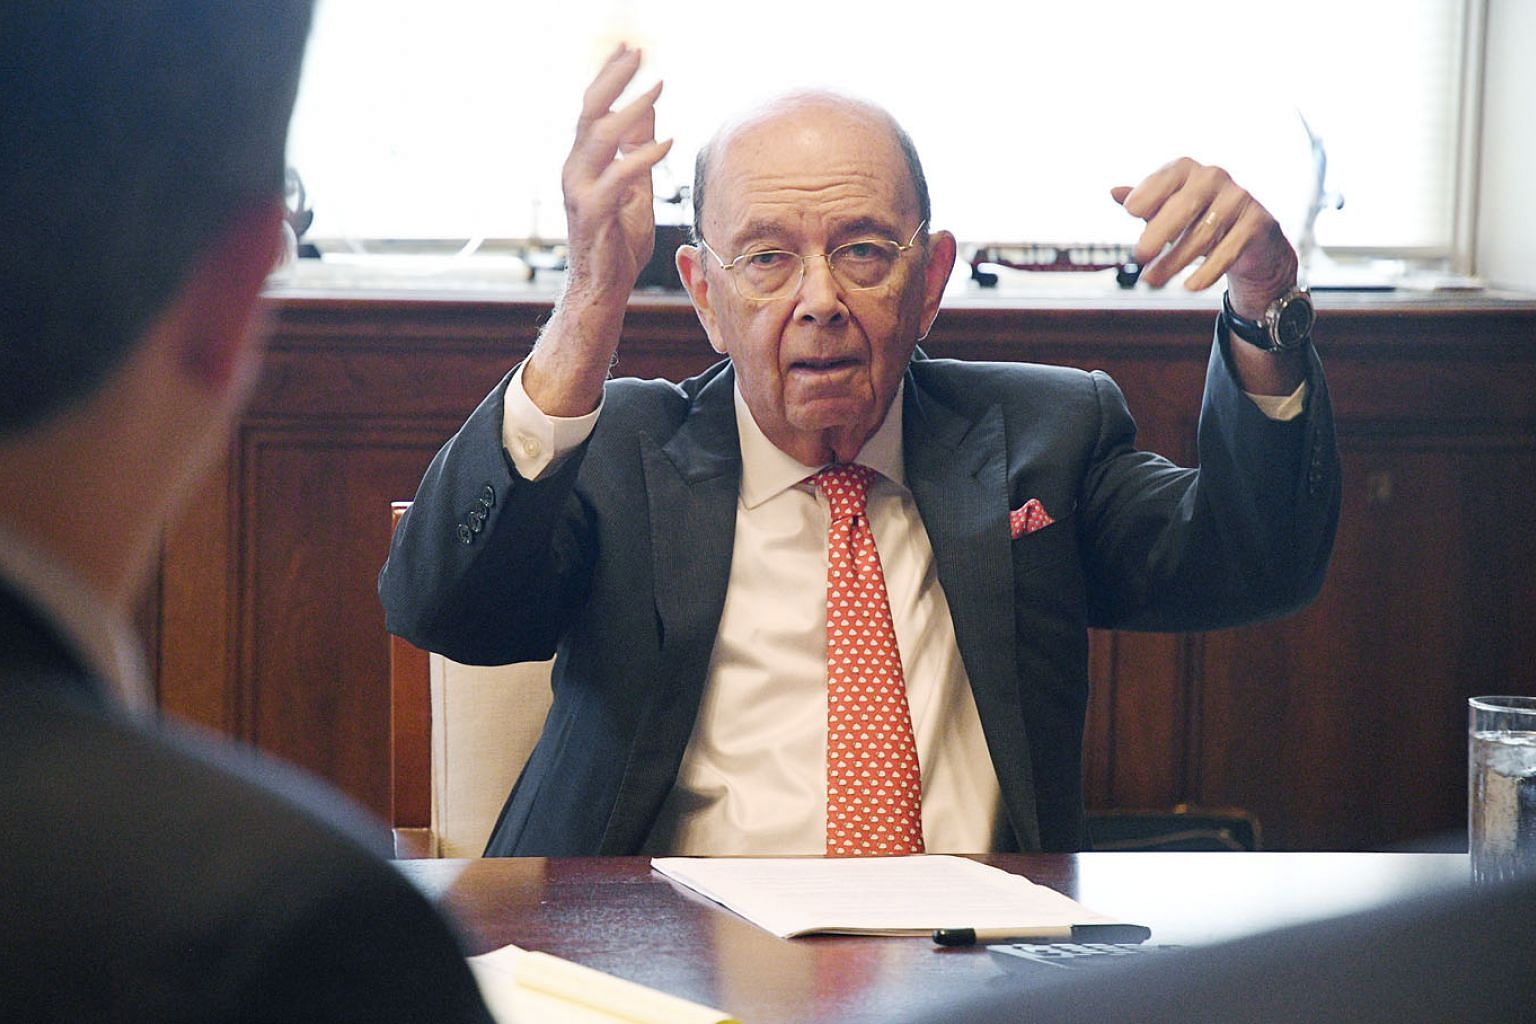 US Commerce Secretary Wilbur Ross says a meeting between US President Donald Trump and Chinese President Xi Jinping on the sidelines of the G-20 summit will set the framework for further talks to resolve trade issues.